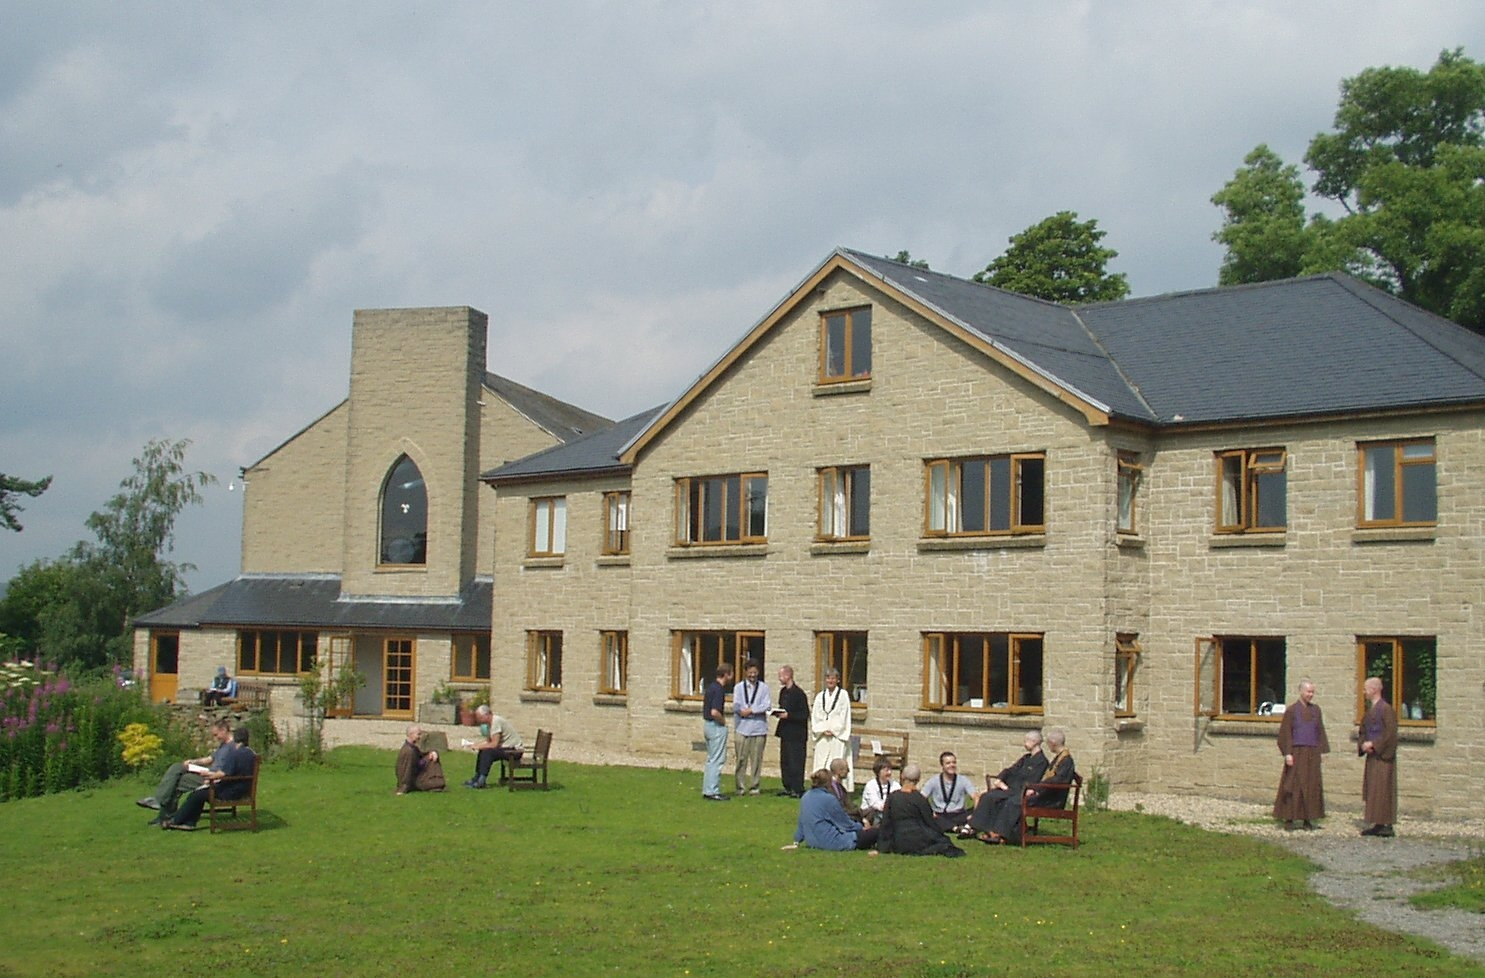 The exterior of Throssel Hole Buddhist Abbey, England